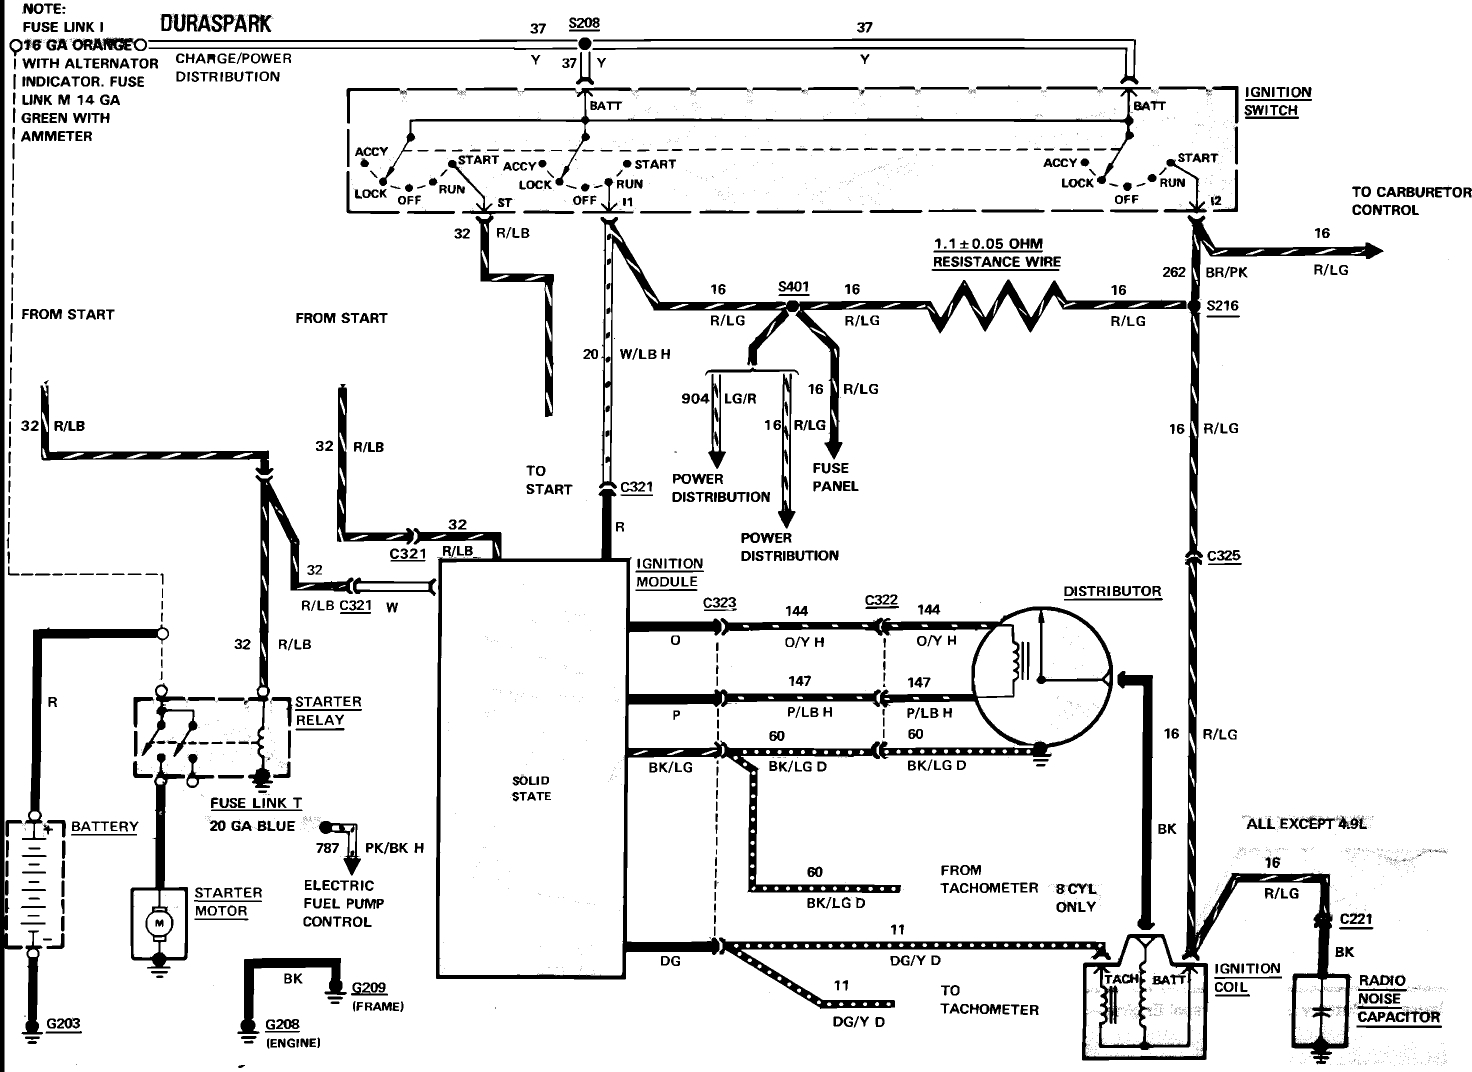 1974 ford mustang fuel system diagram